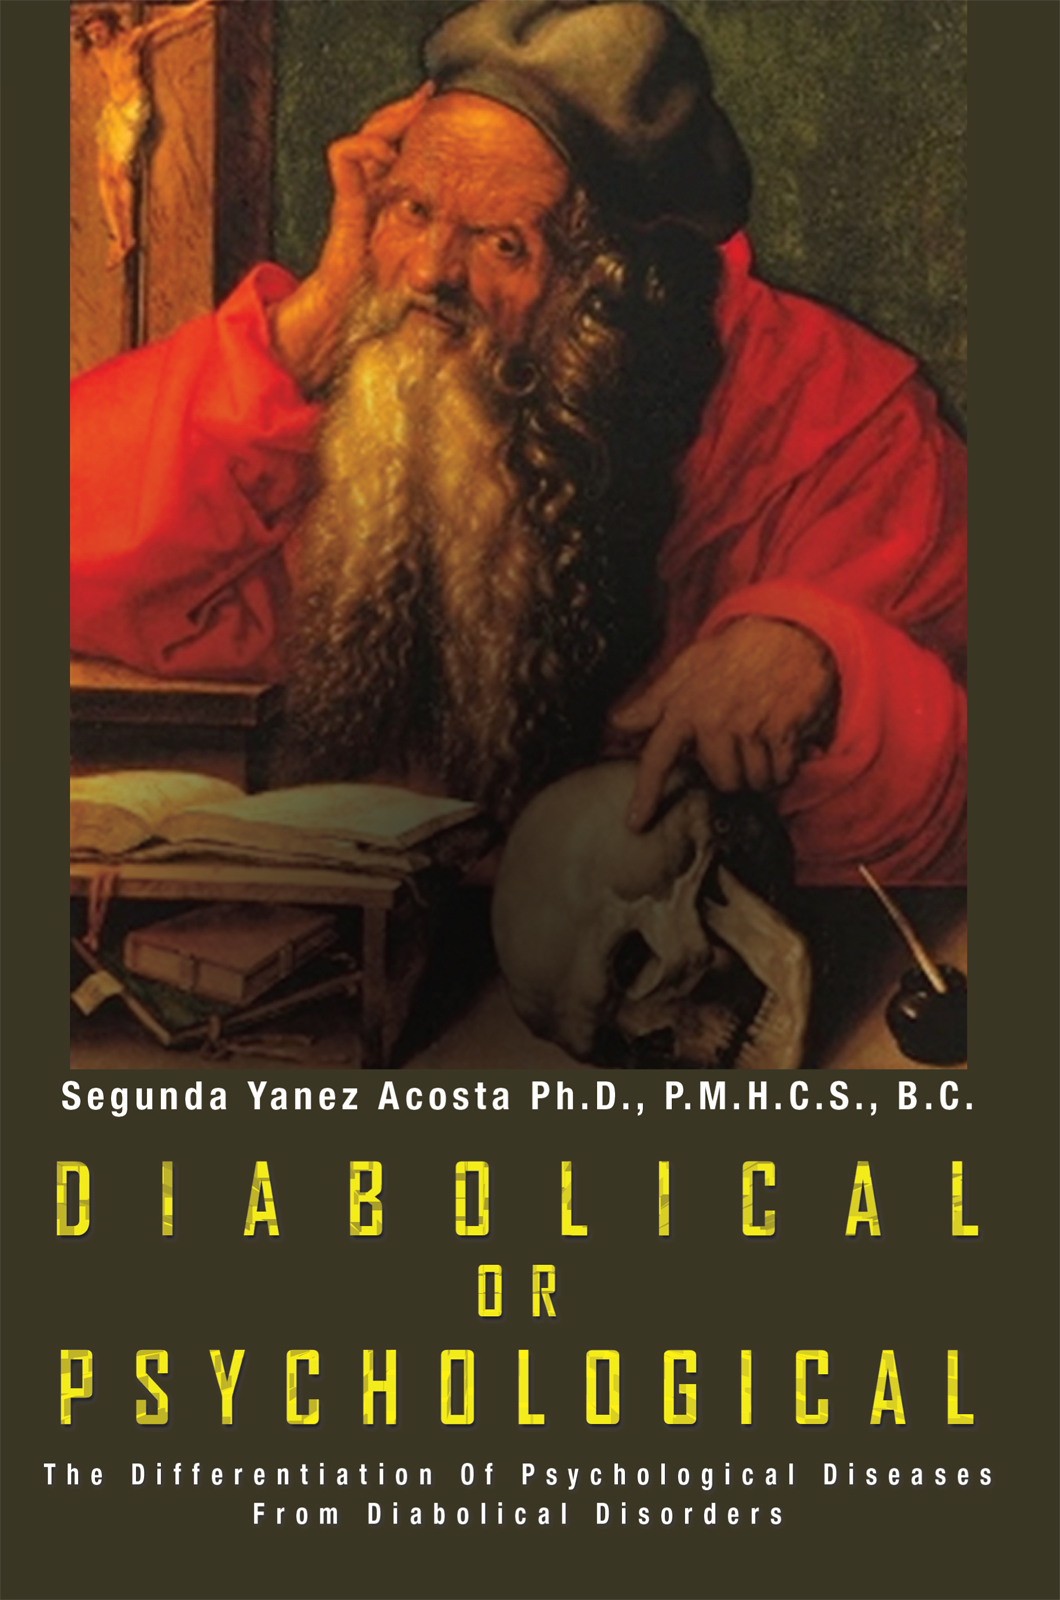 DIABOLICAL OR  PSYCHOLOGICAL By: Segunda Yanez Acosta